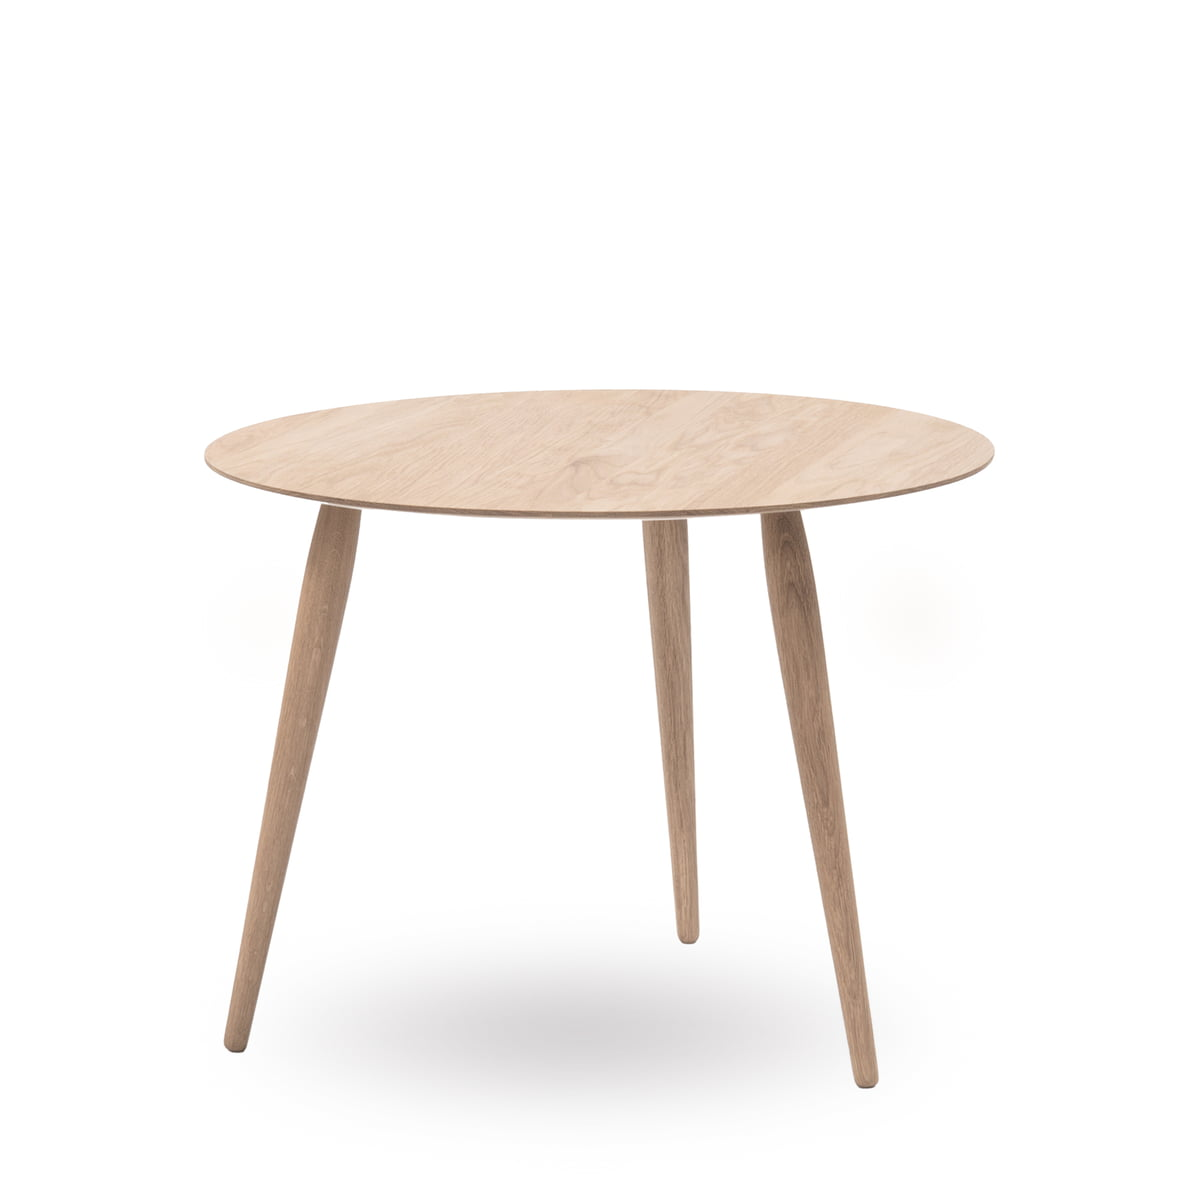 Round Wood Coffee Table.Bruunmunch Playround Side Table Wood O 75 Cm Oak Soaped